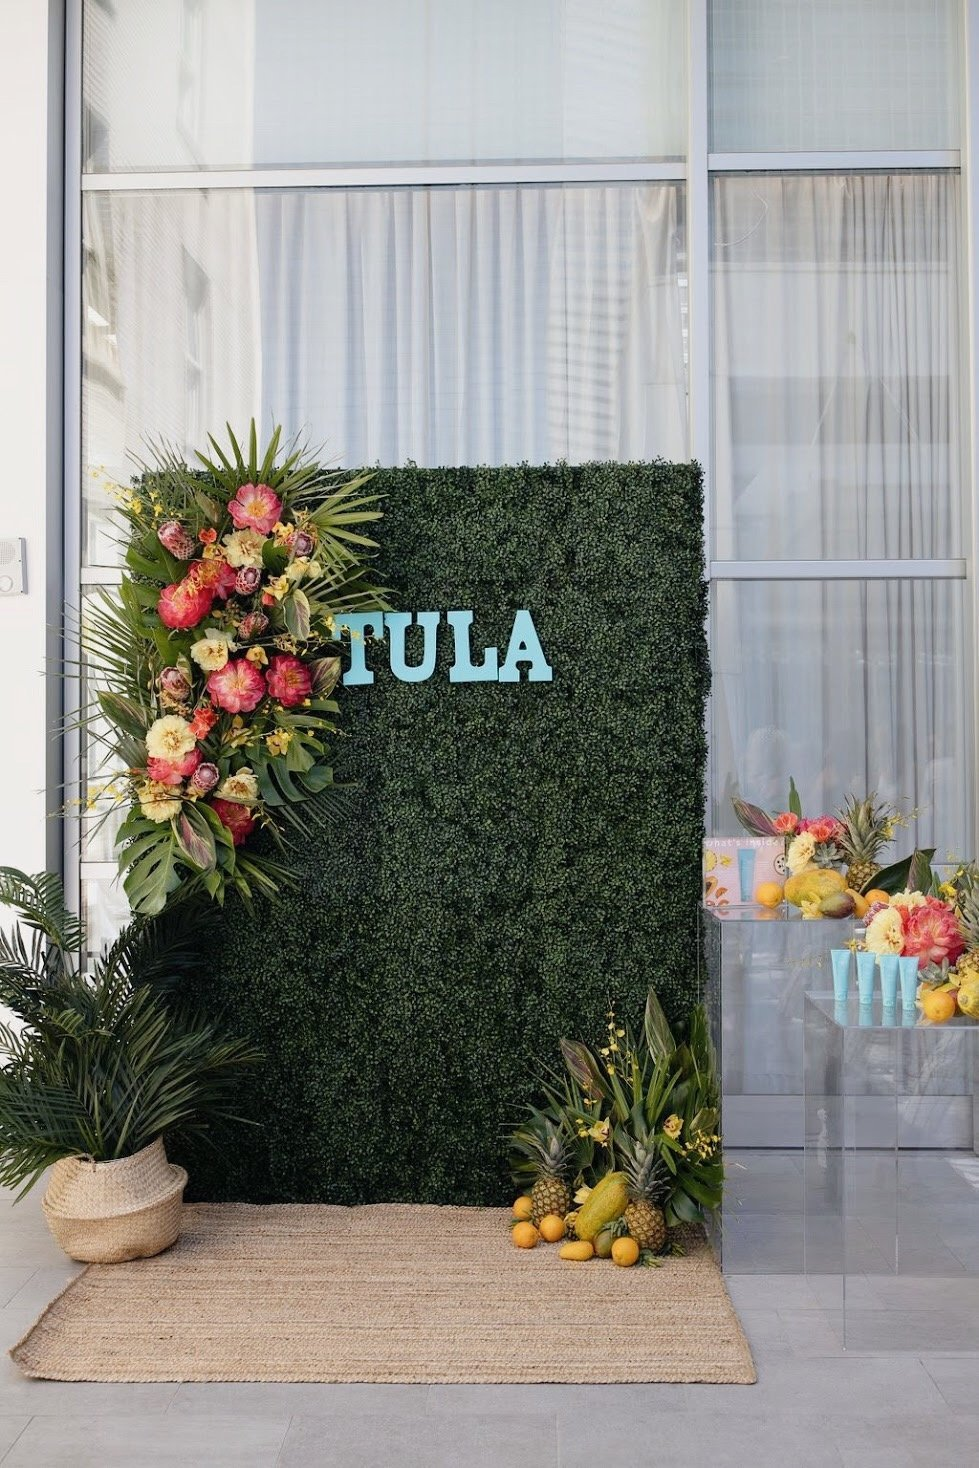 Tula Dallas Event